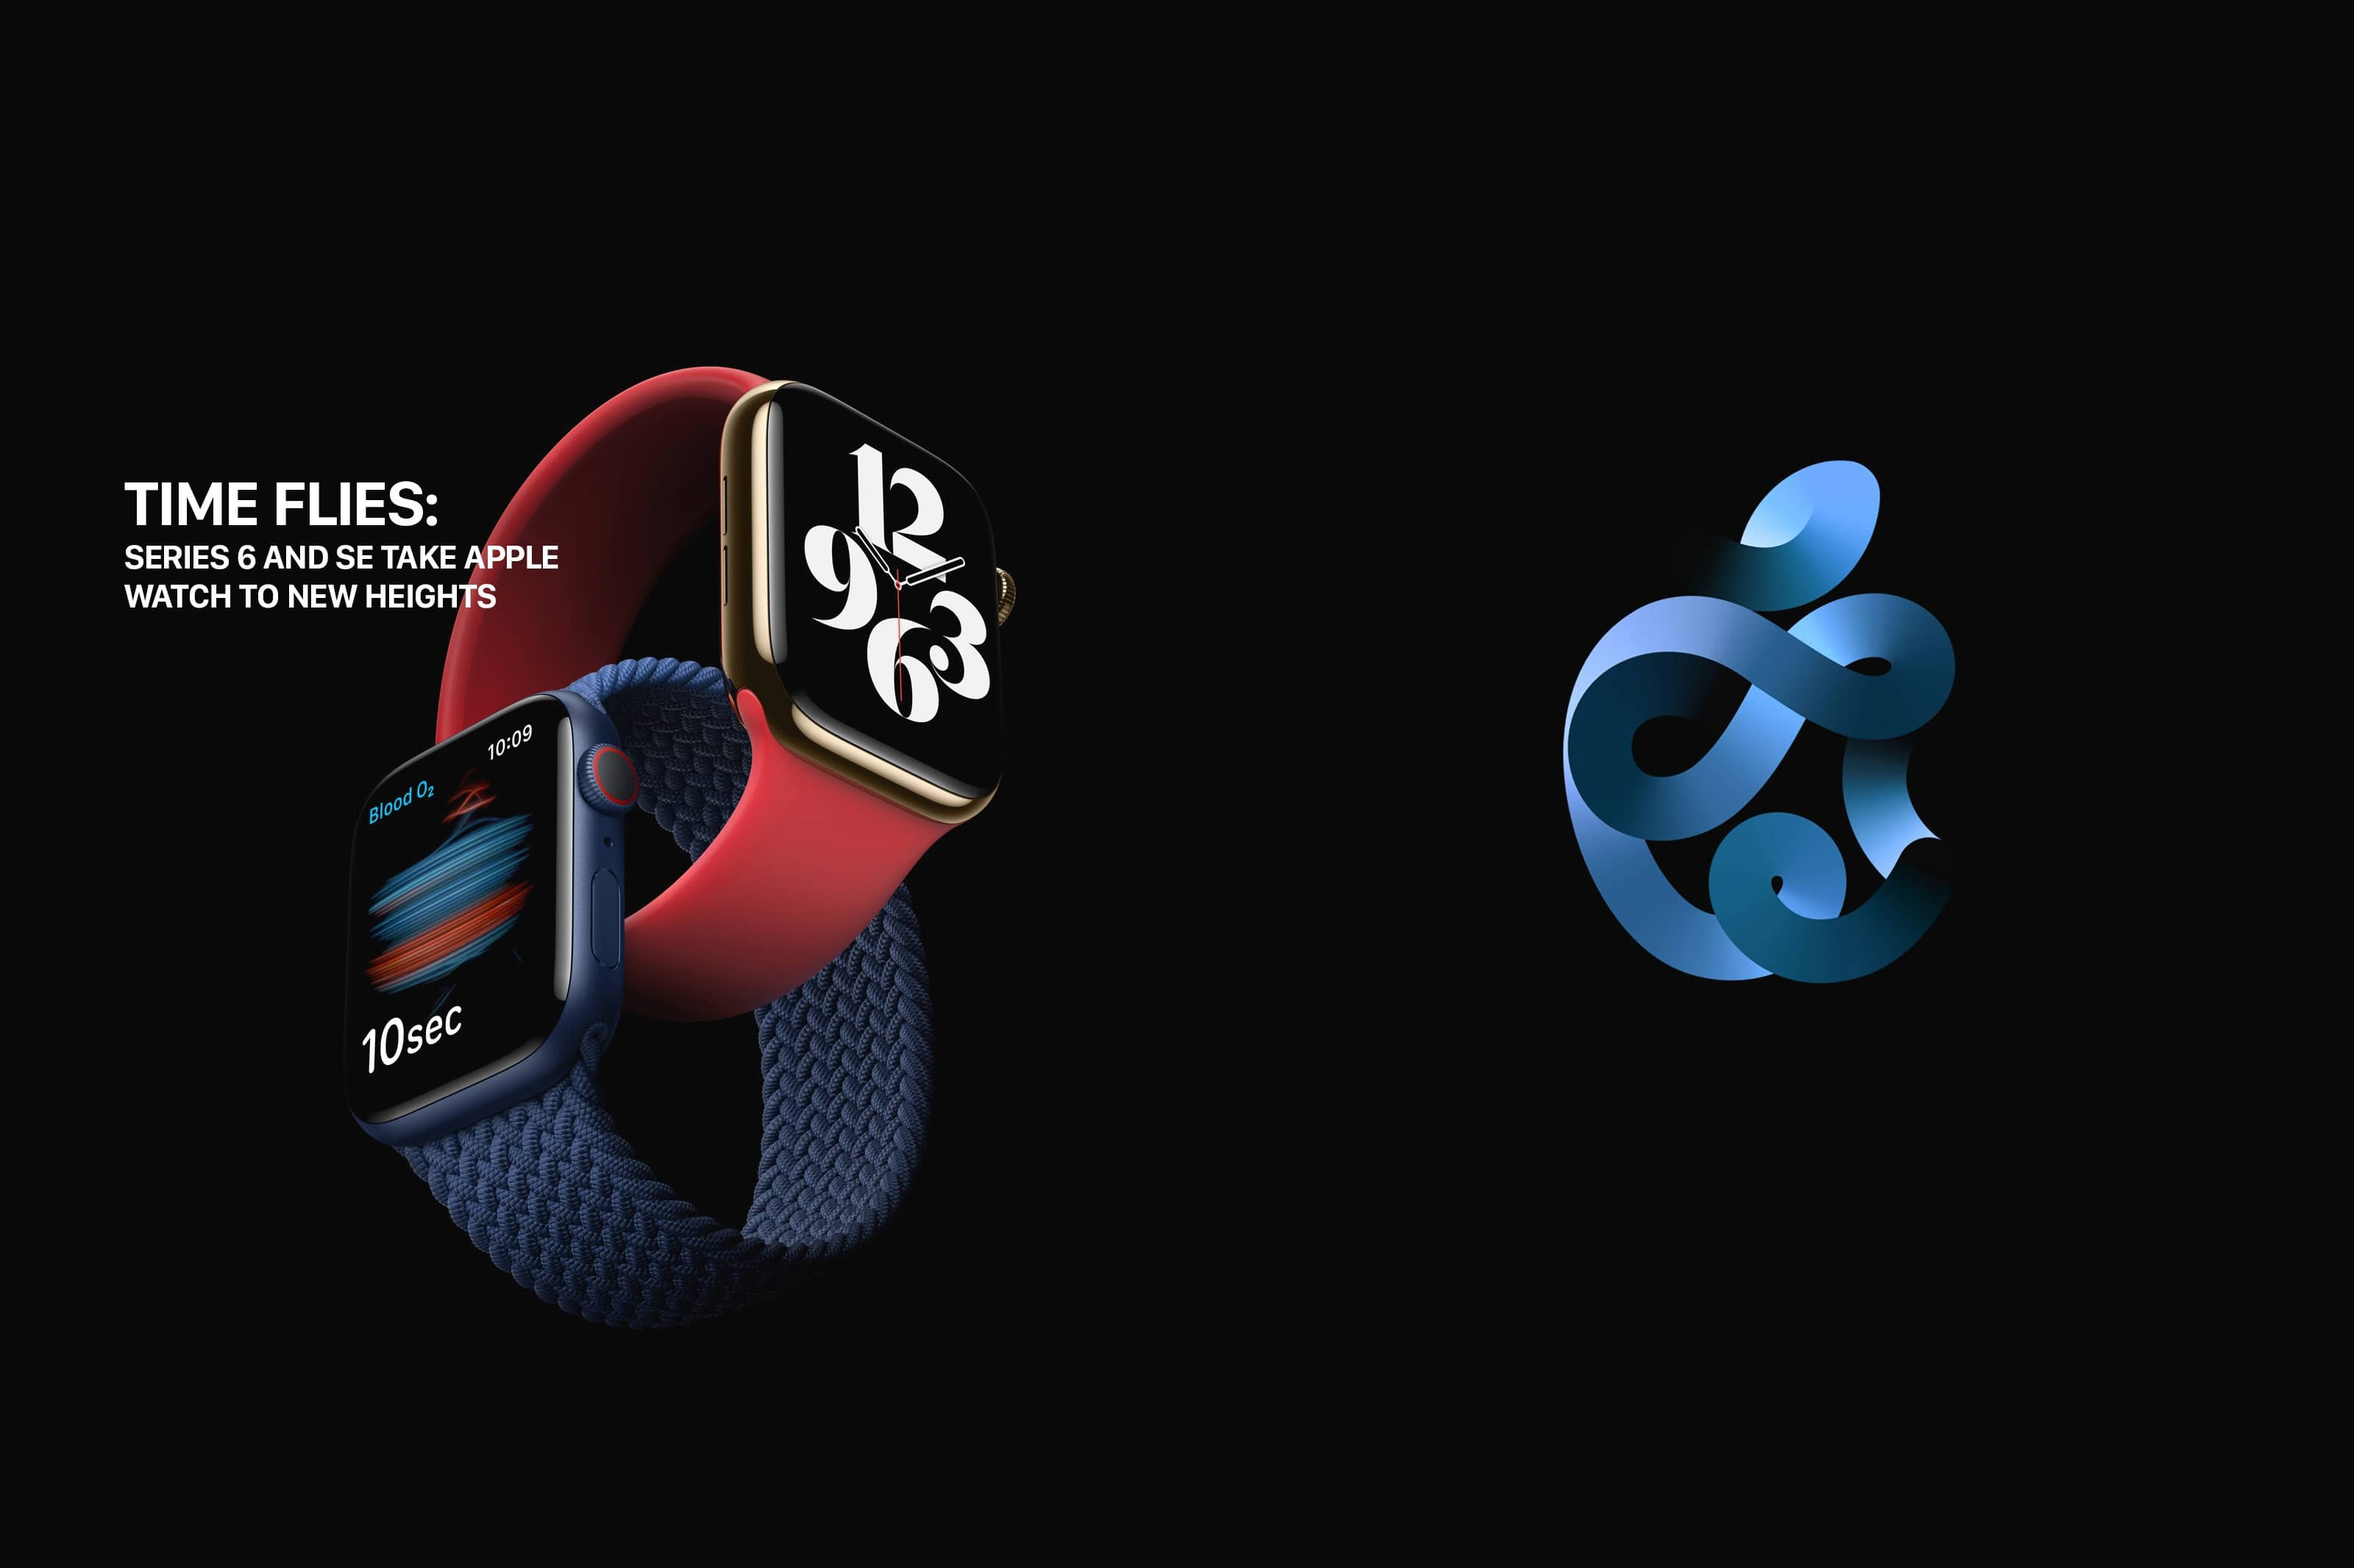 TIME FLIES:SERIES 6 AND SE TAKE APPLE WATCH TO NEW HEIGHTS